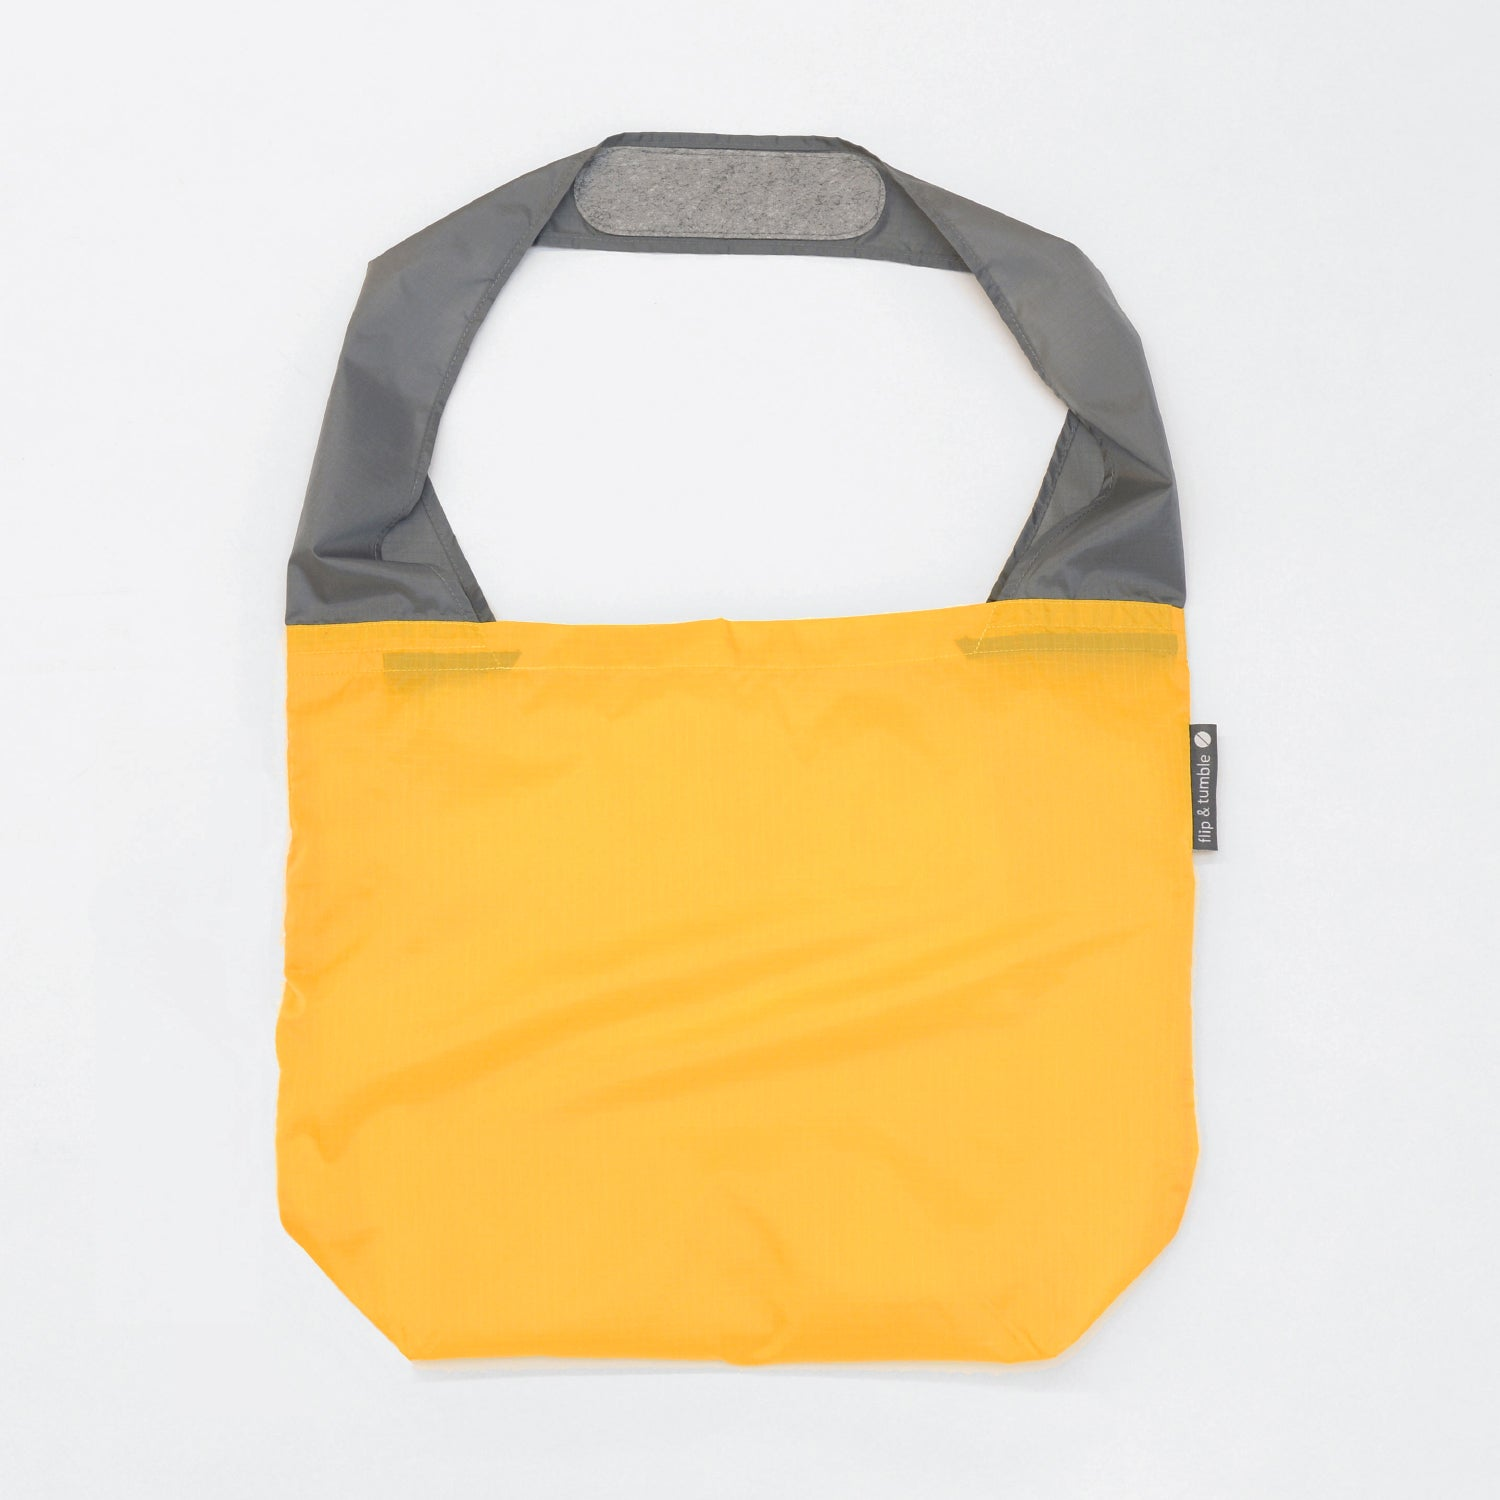 yellow reusable grocery shopping bag